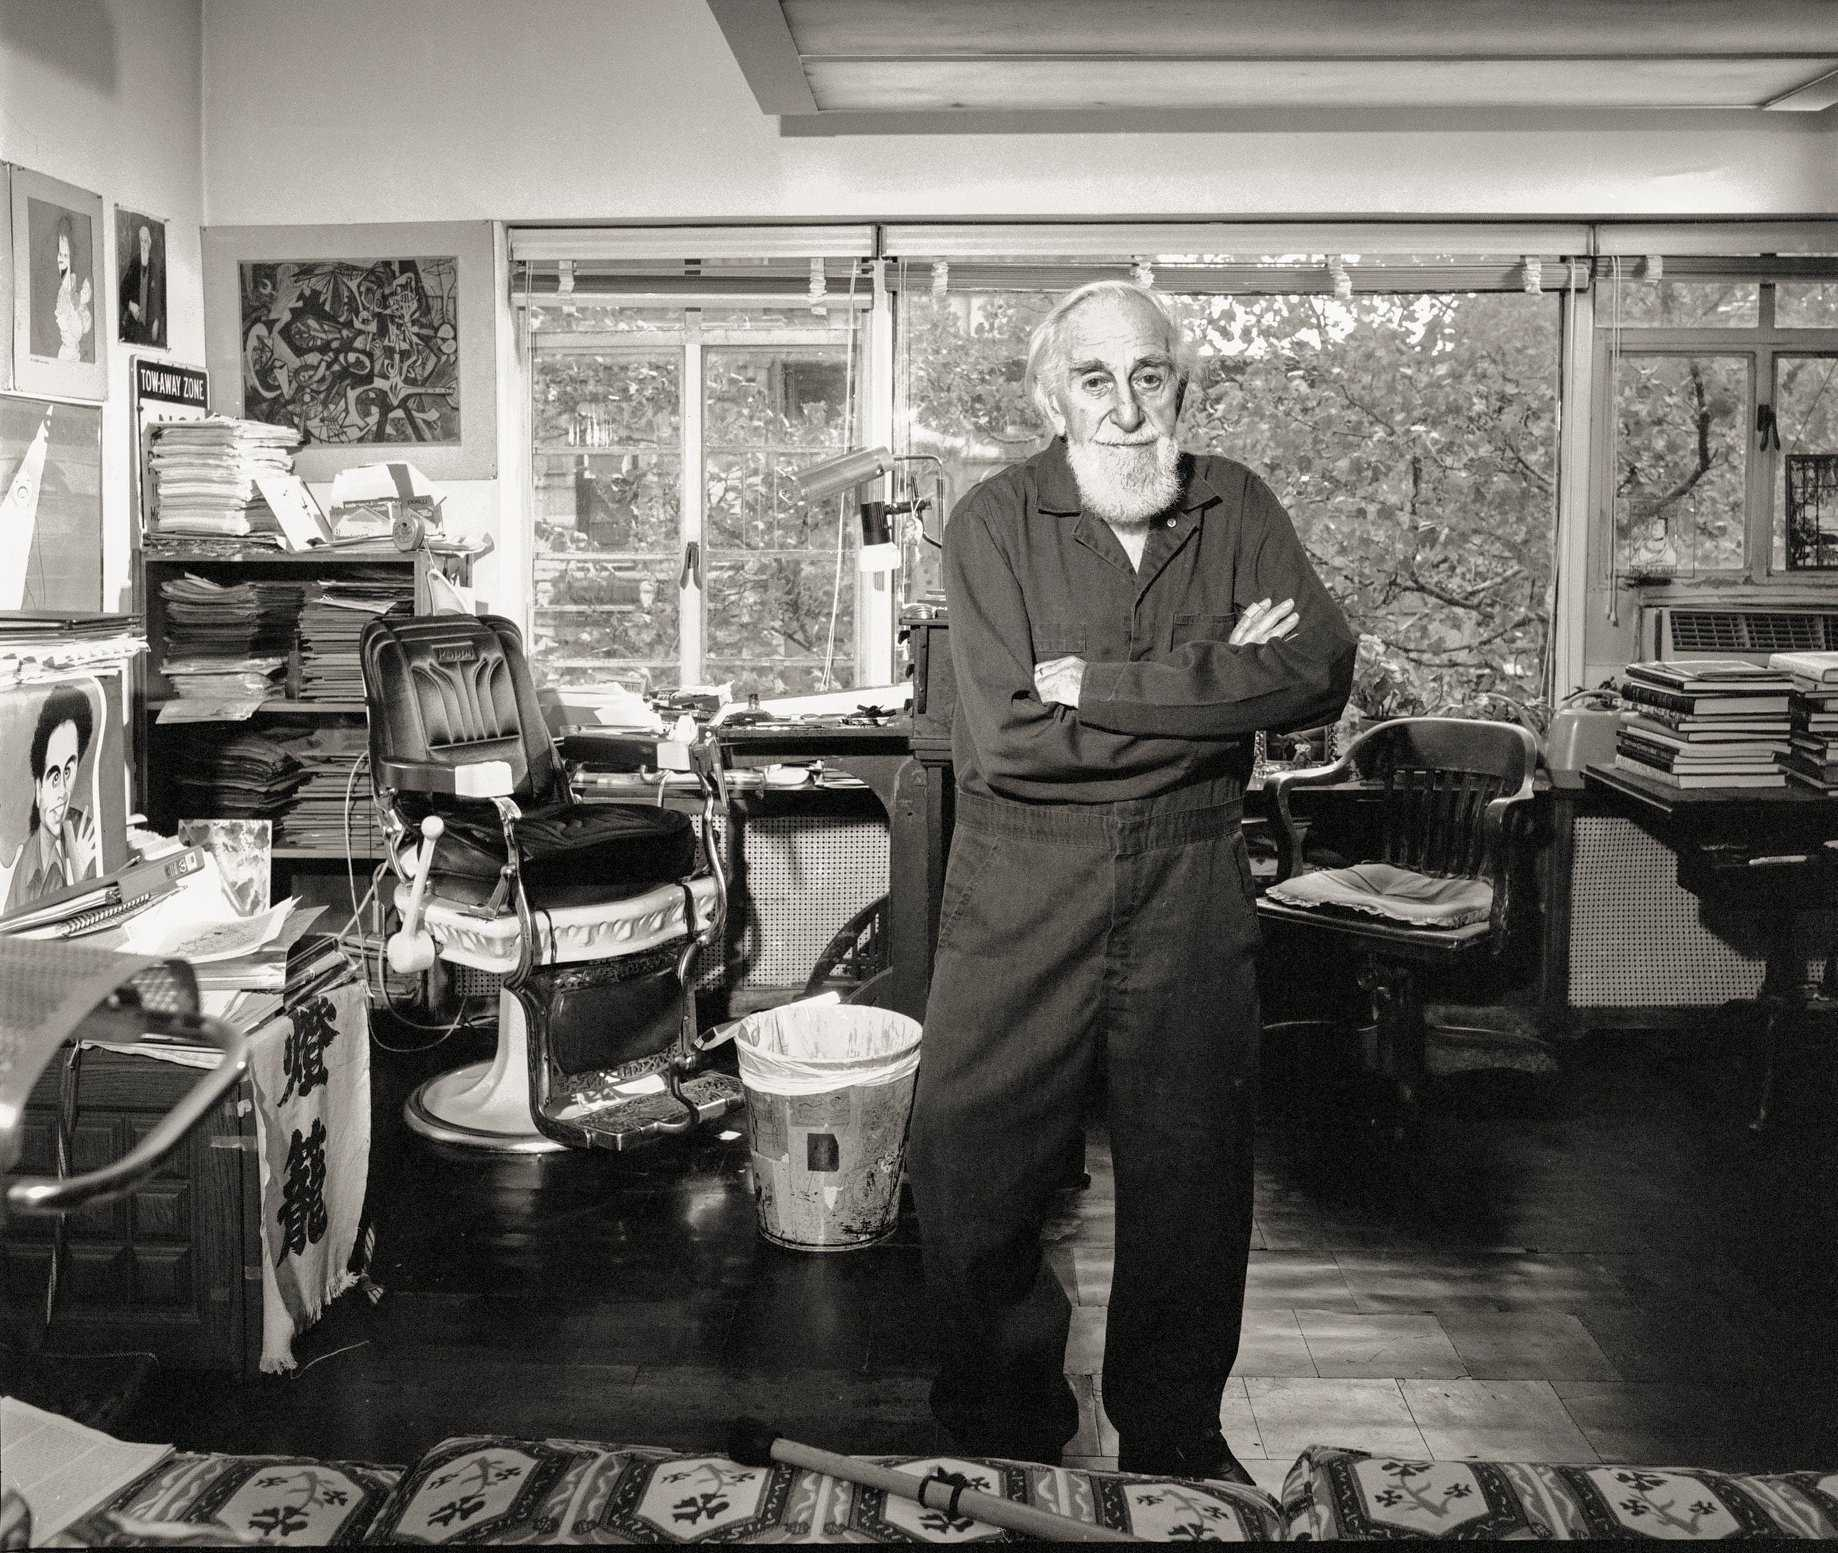 Artist/Illustrator/Caricaturist Al Hirschfeld, Photographed in his Manhattan Studio.